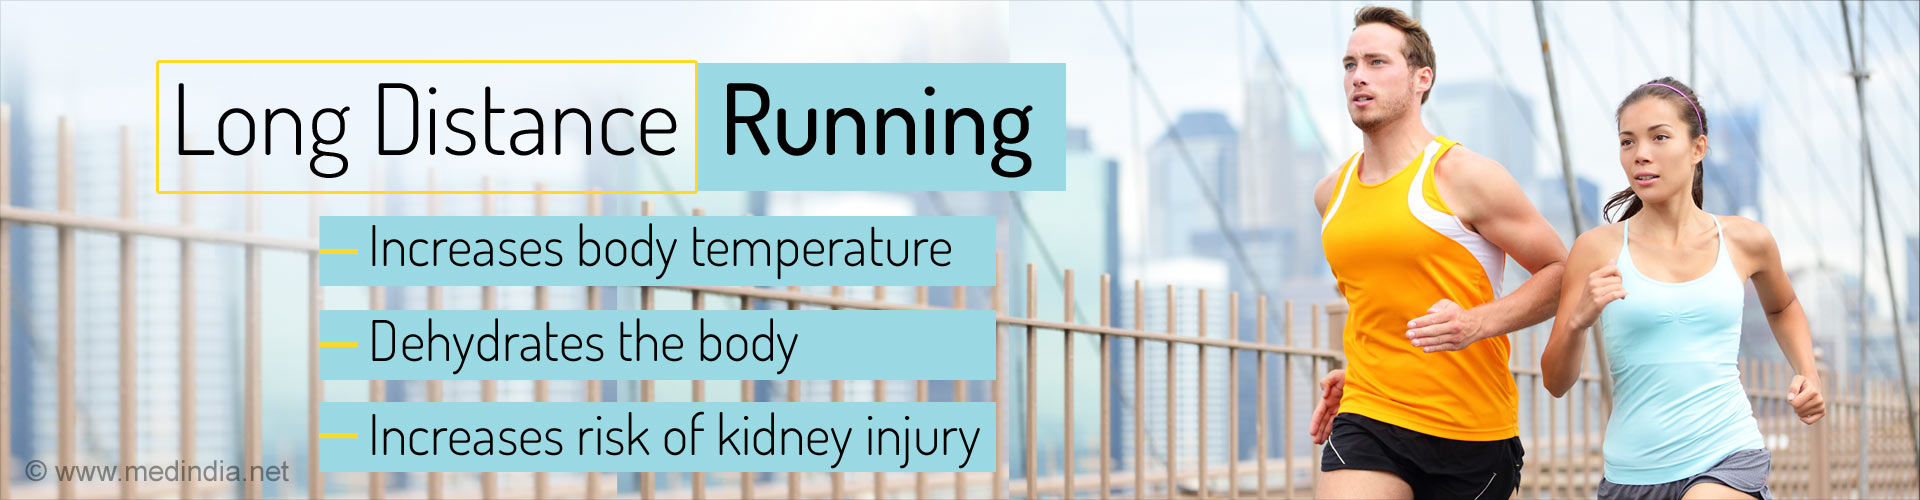 Long distance running